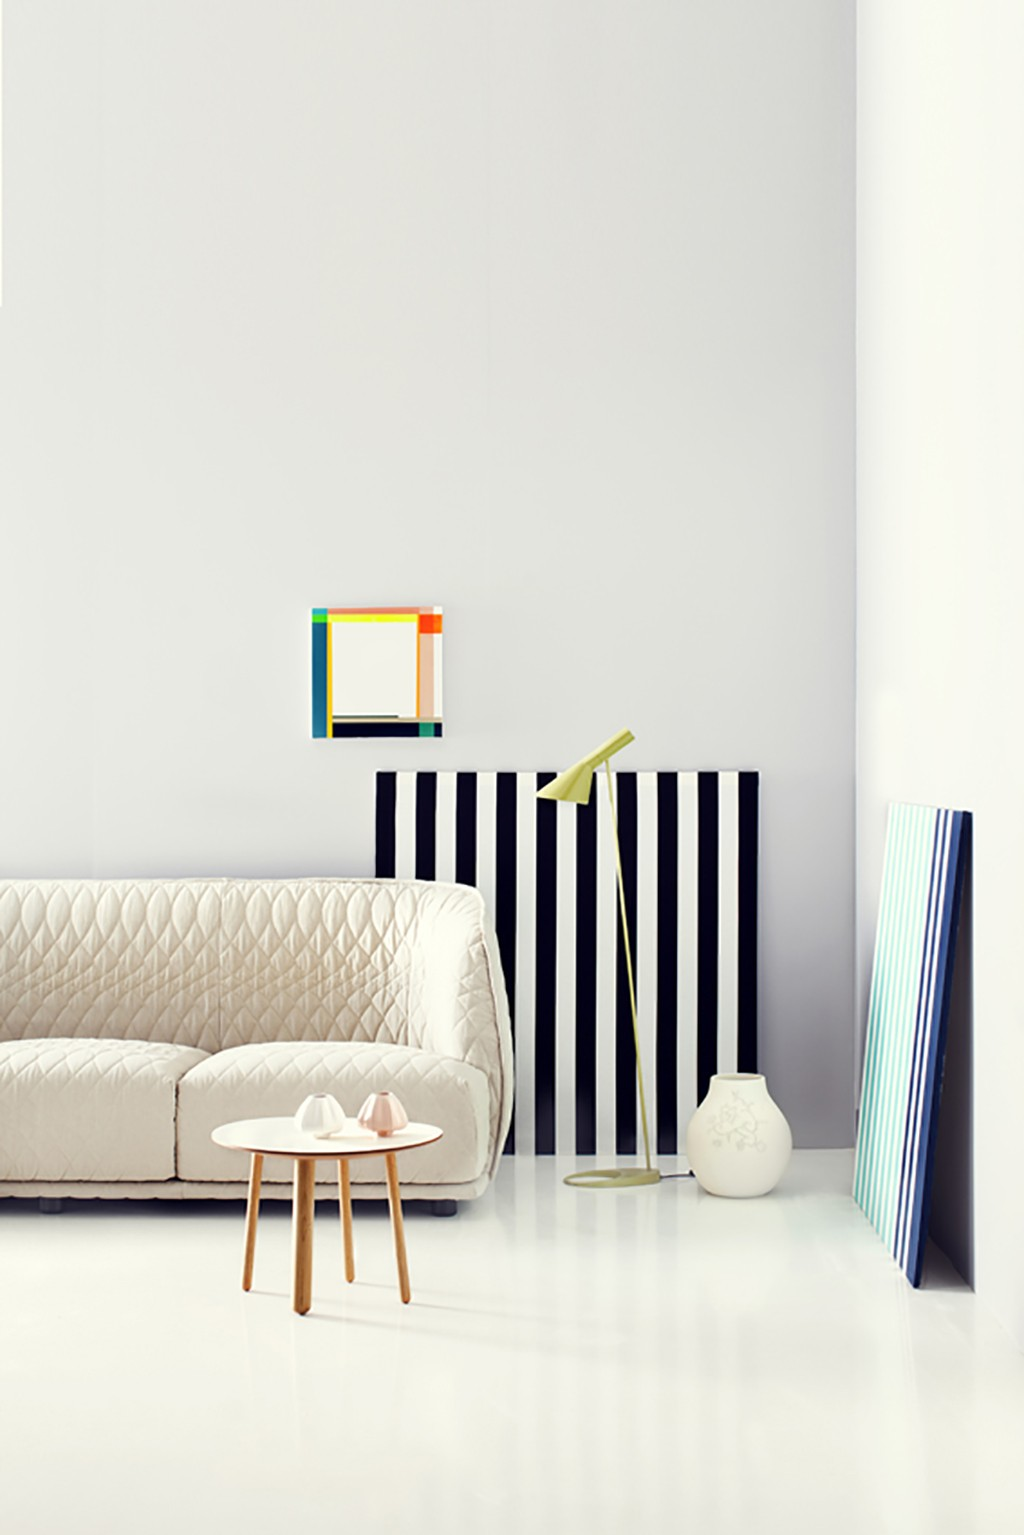 Paint and wallpaper ideas for Deko-magazine by Susanna Vento